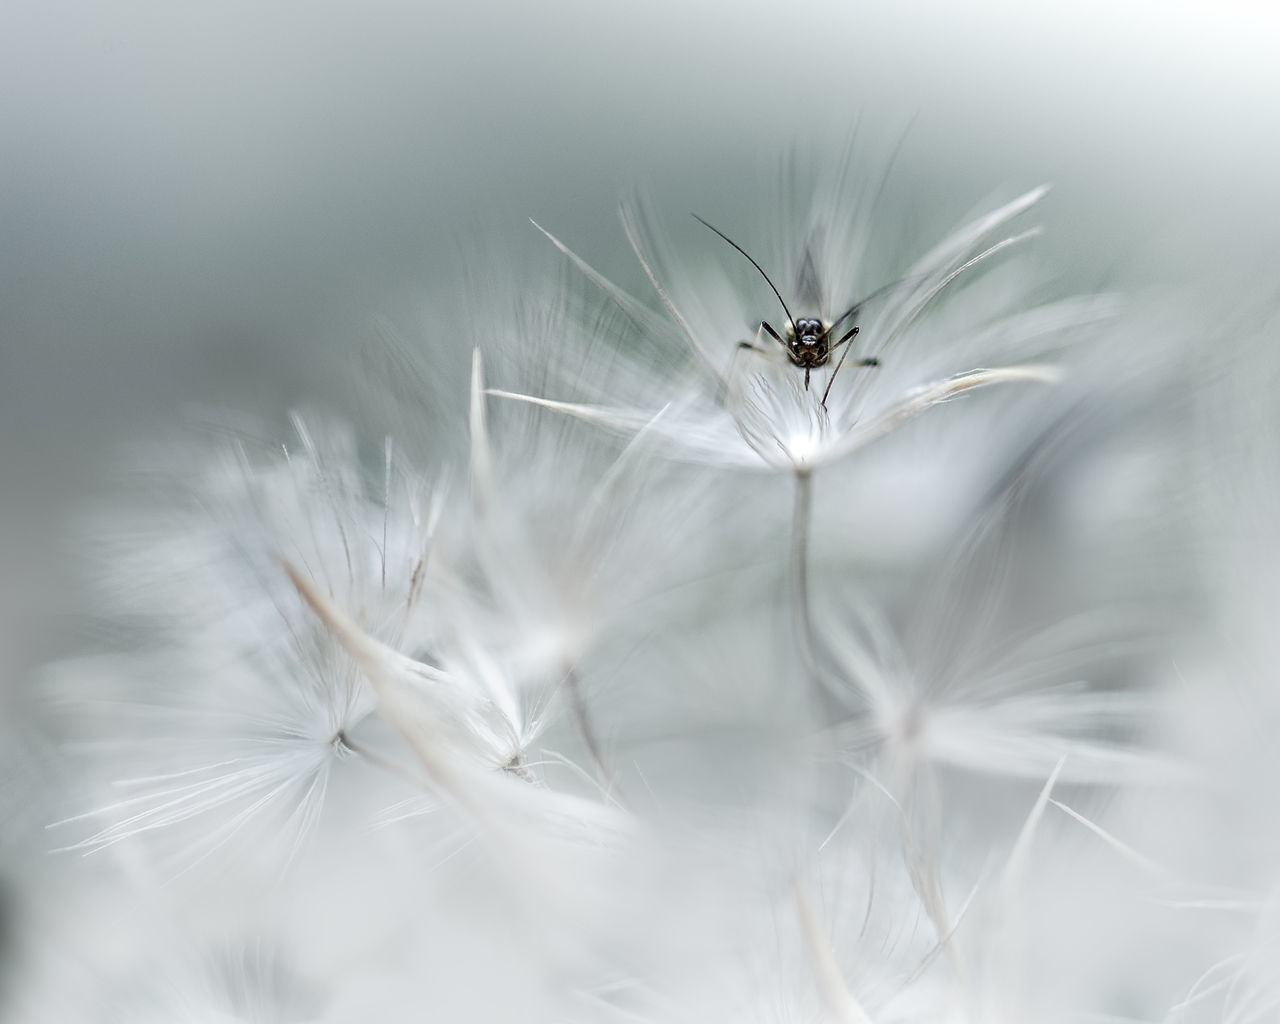 Beauty In Nature Close-up Dandelion Flower Head Mosquito Nature Outdoors Small Tiny